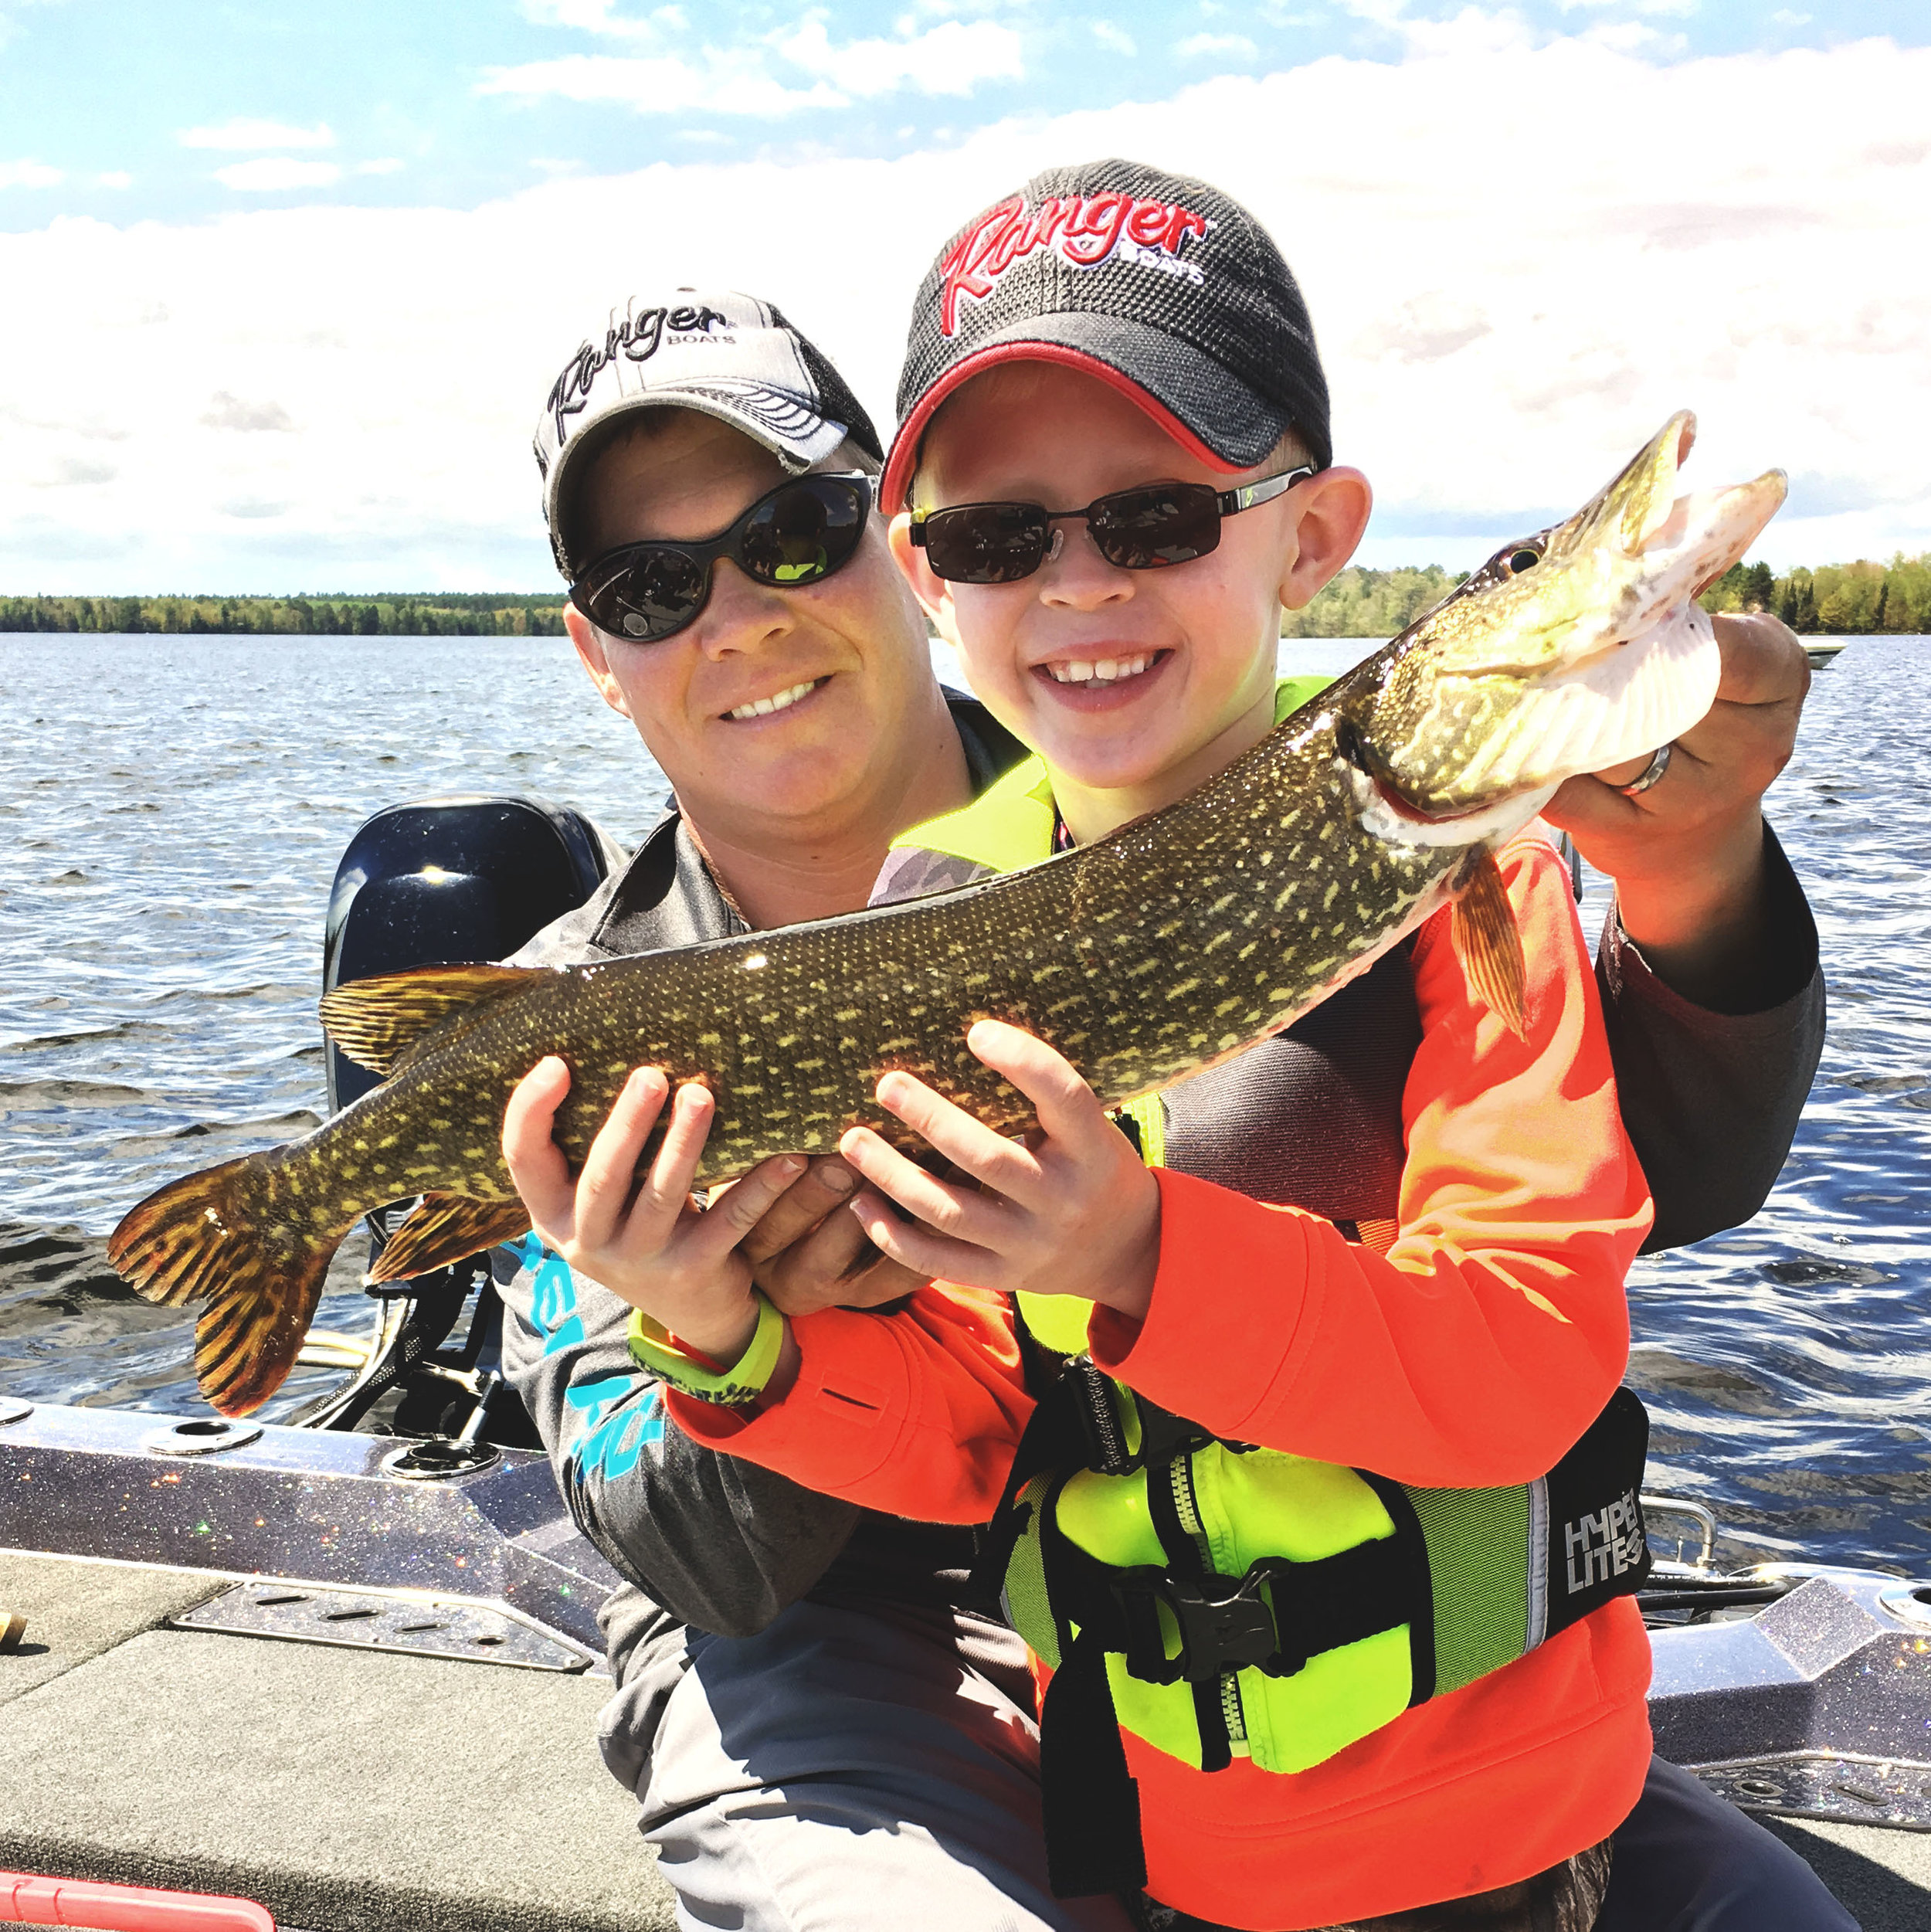 ADVANTAGES OF CHOOSING US - •I have 30+ years fishing experience and credentials, starting at age 12, fishing these areas, and will give you, your family, or friends a knowledgeable, enjoyable, and exciting fishing charter!• Anyone under 18 fishes FREE! I have children of my own and know this can be helpful.•We can customize guided hours to best fit your schedule (standard is 4-8 hours, but I can work with you).